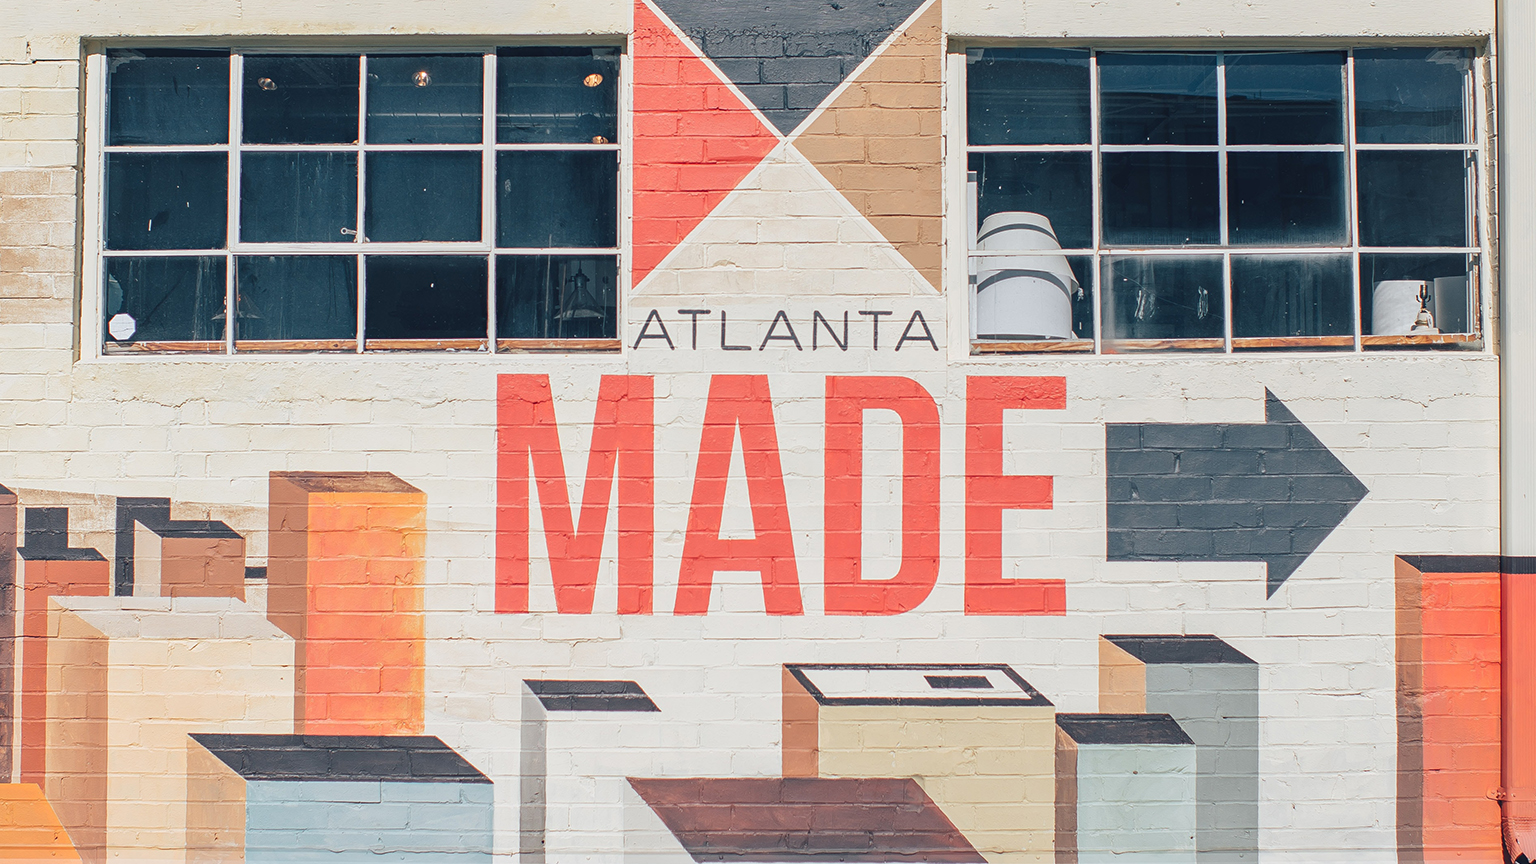 Building mural with a cityscape and the text Atlanta Made. Photo by Ian Schneider on Unsplash.